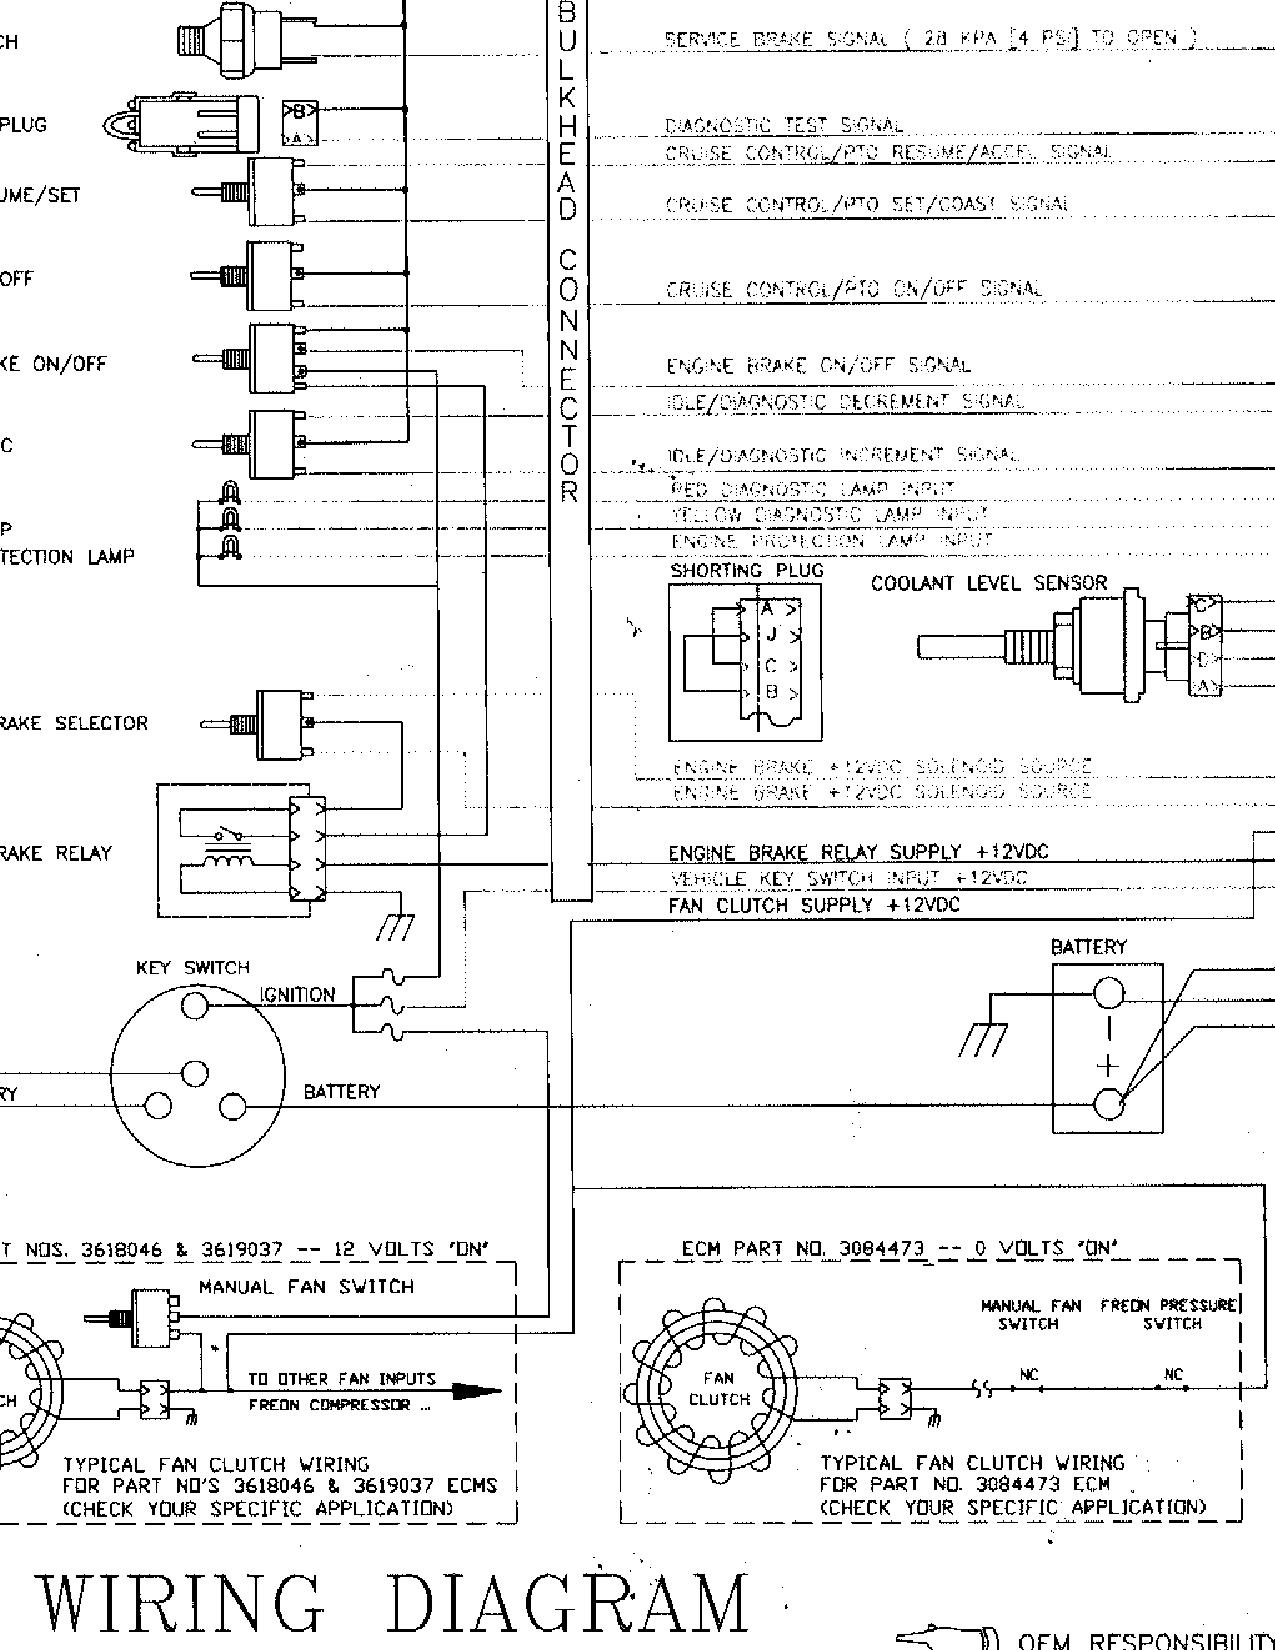 i want to install an n14 celect plus in my 84flc freightliner